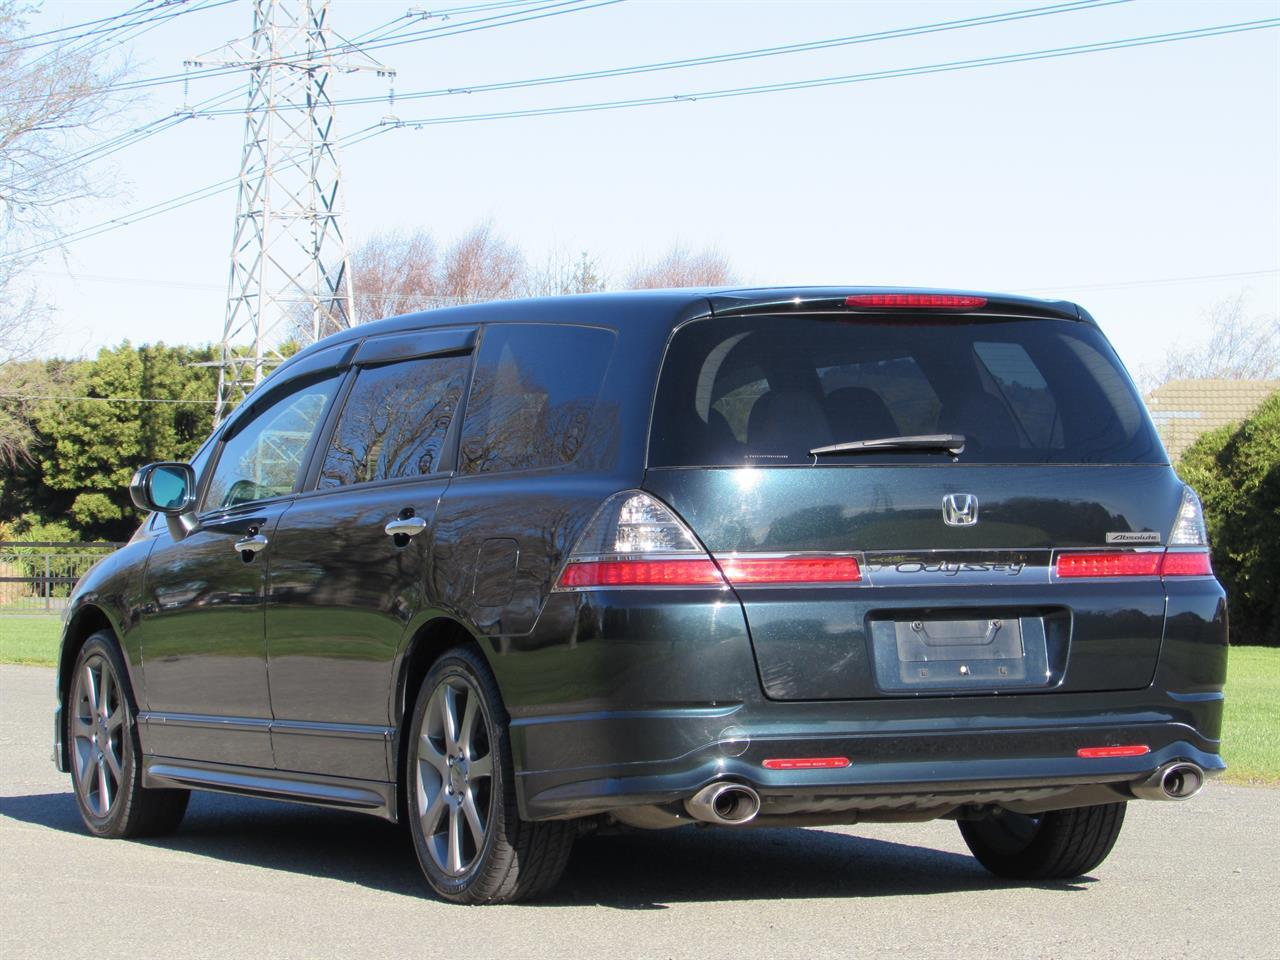 image-3, 2008 Honda Odyssey Absolute at Christchurch